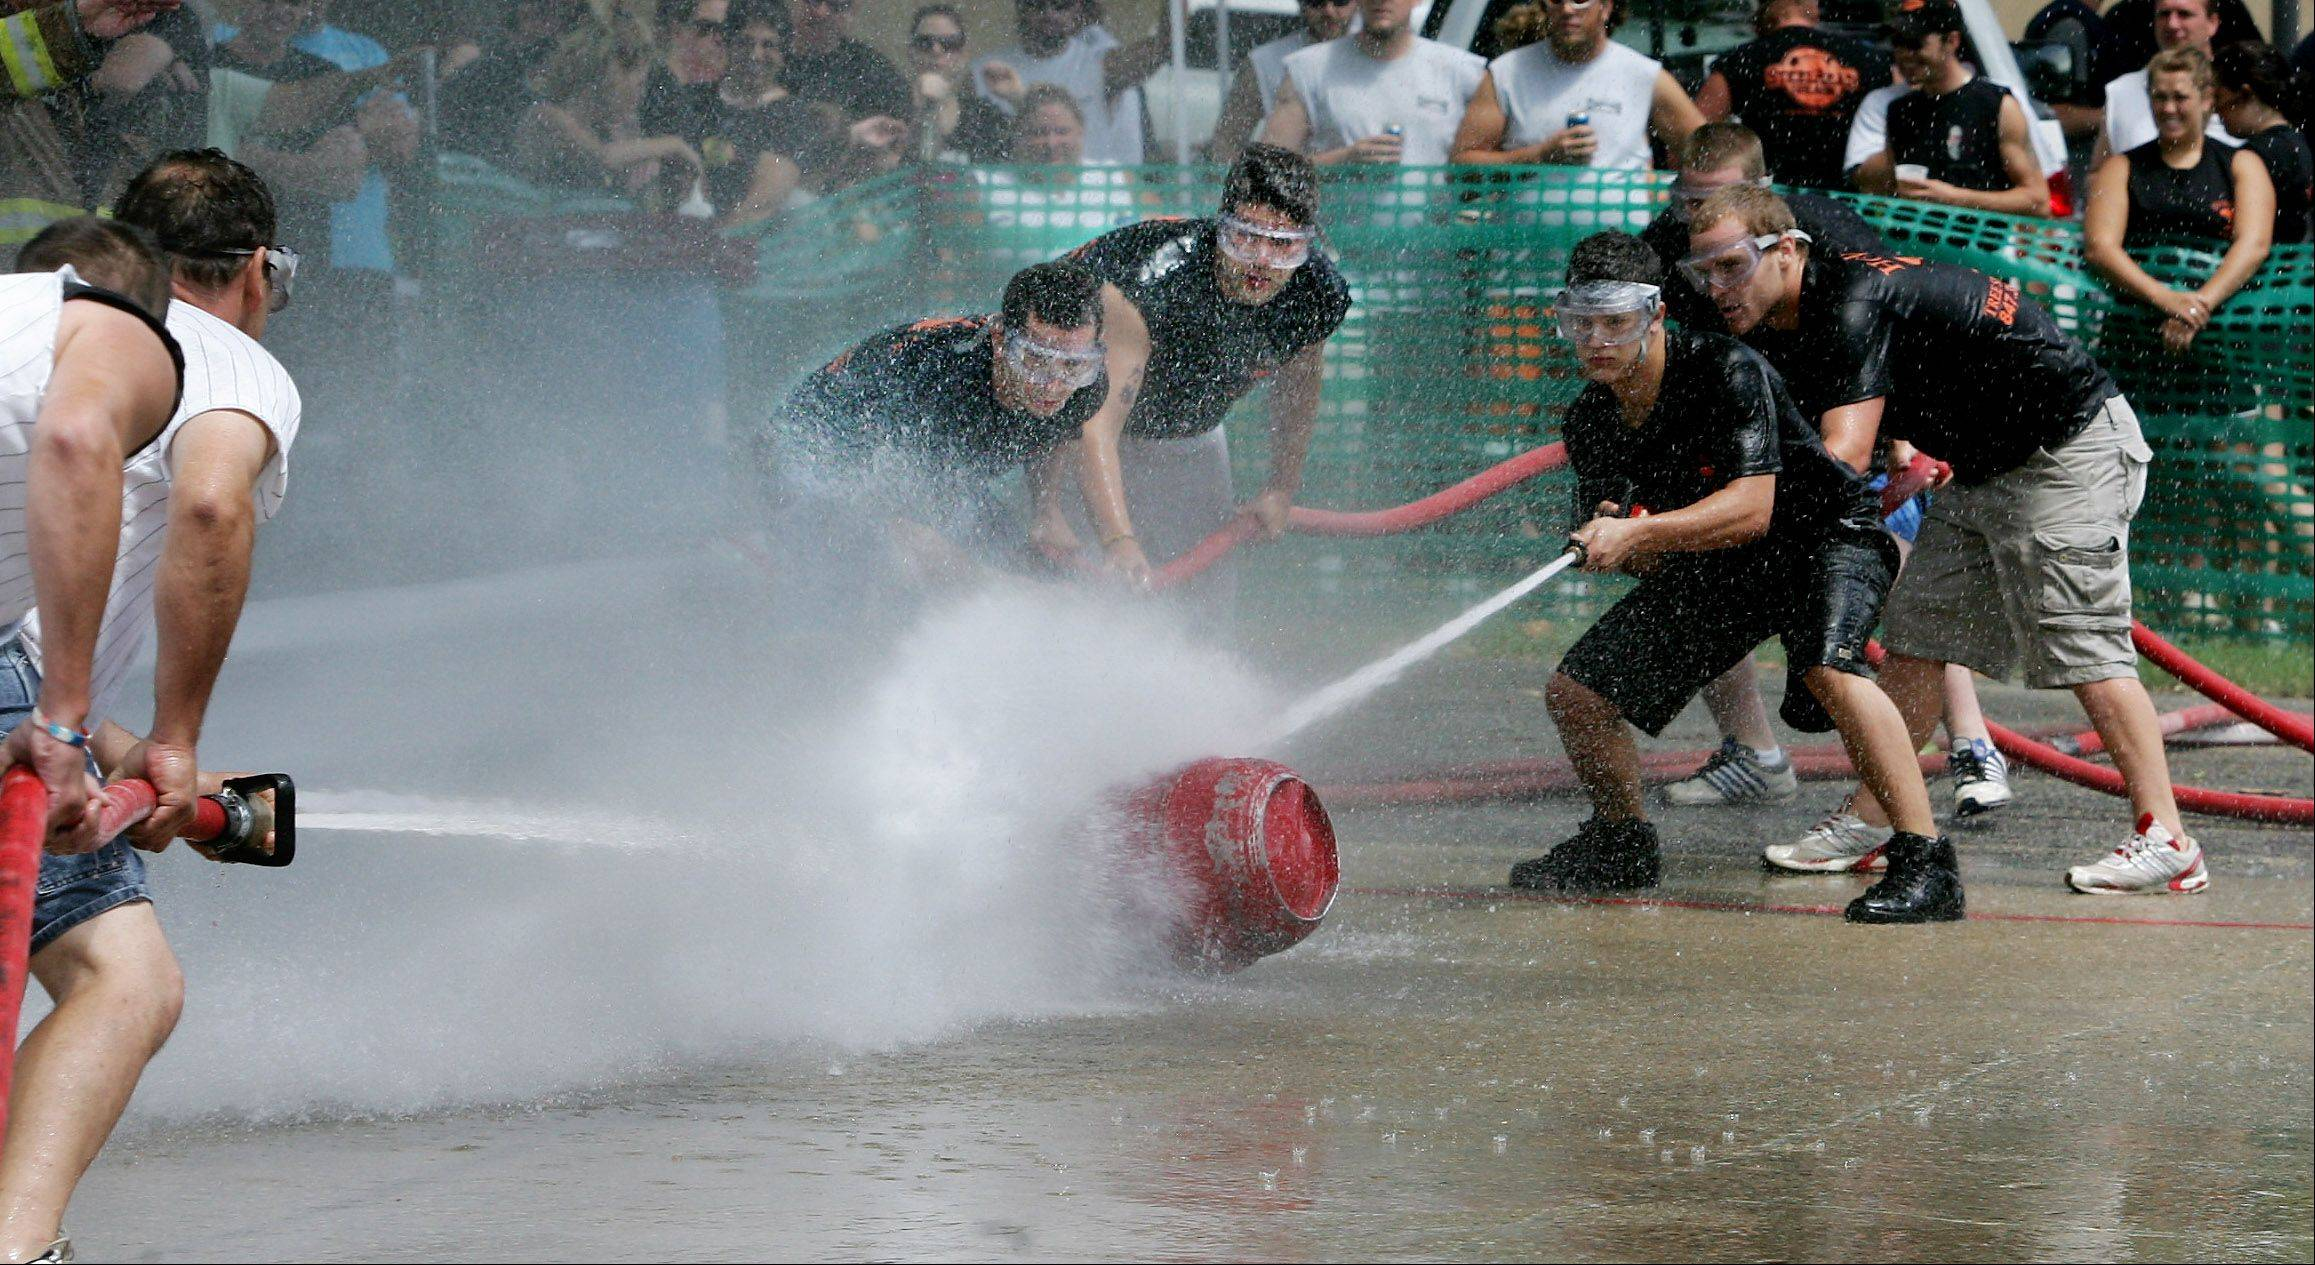 Steve Ziegler, left, and Adam Linczmaier lead the rest of the Horn's Tree Specialist team during the water fights at the 2010 Lake Villa Days.